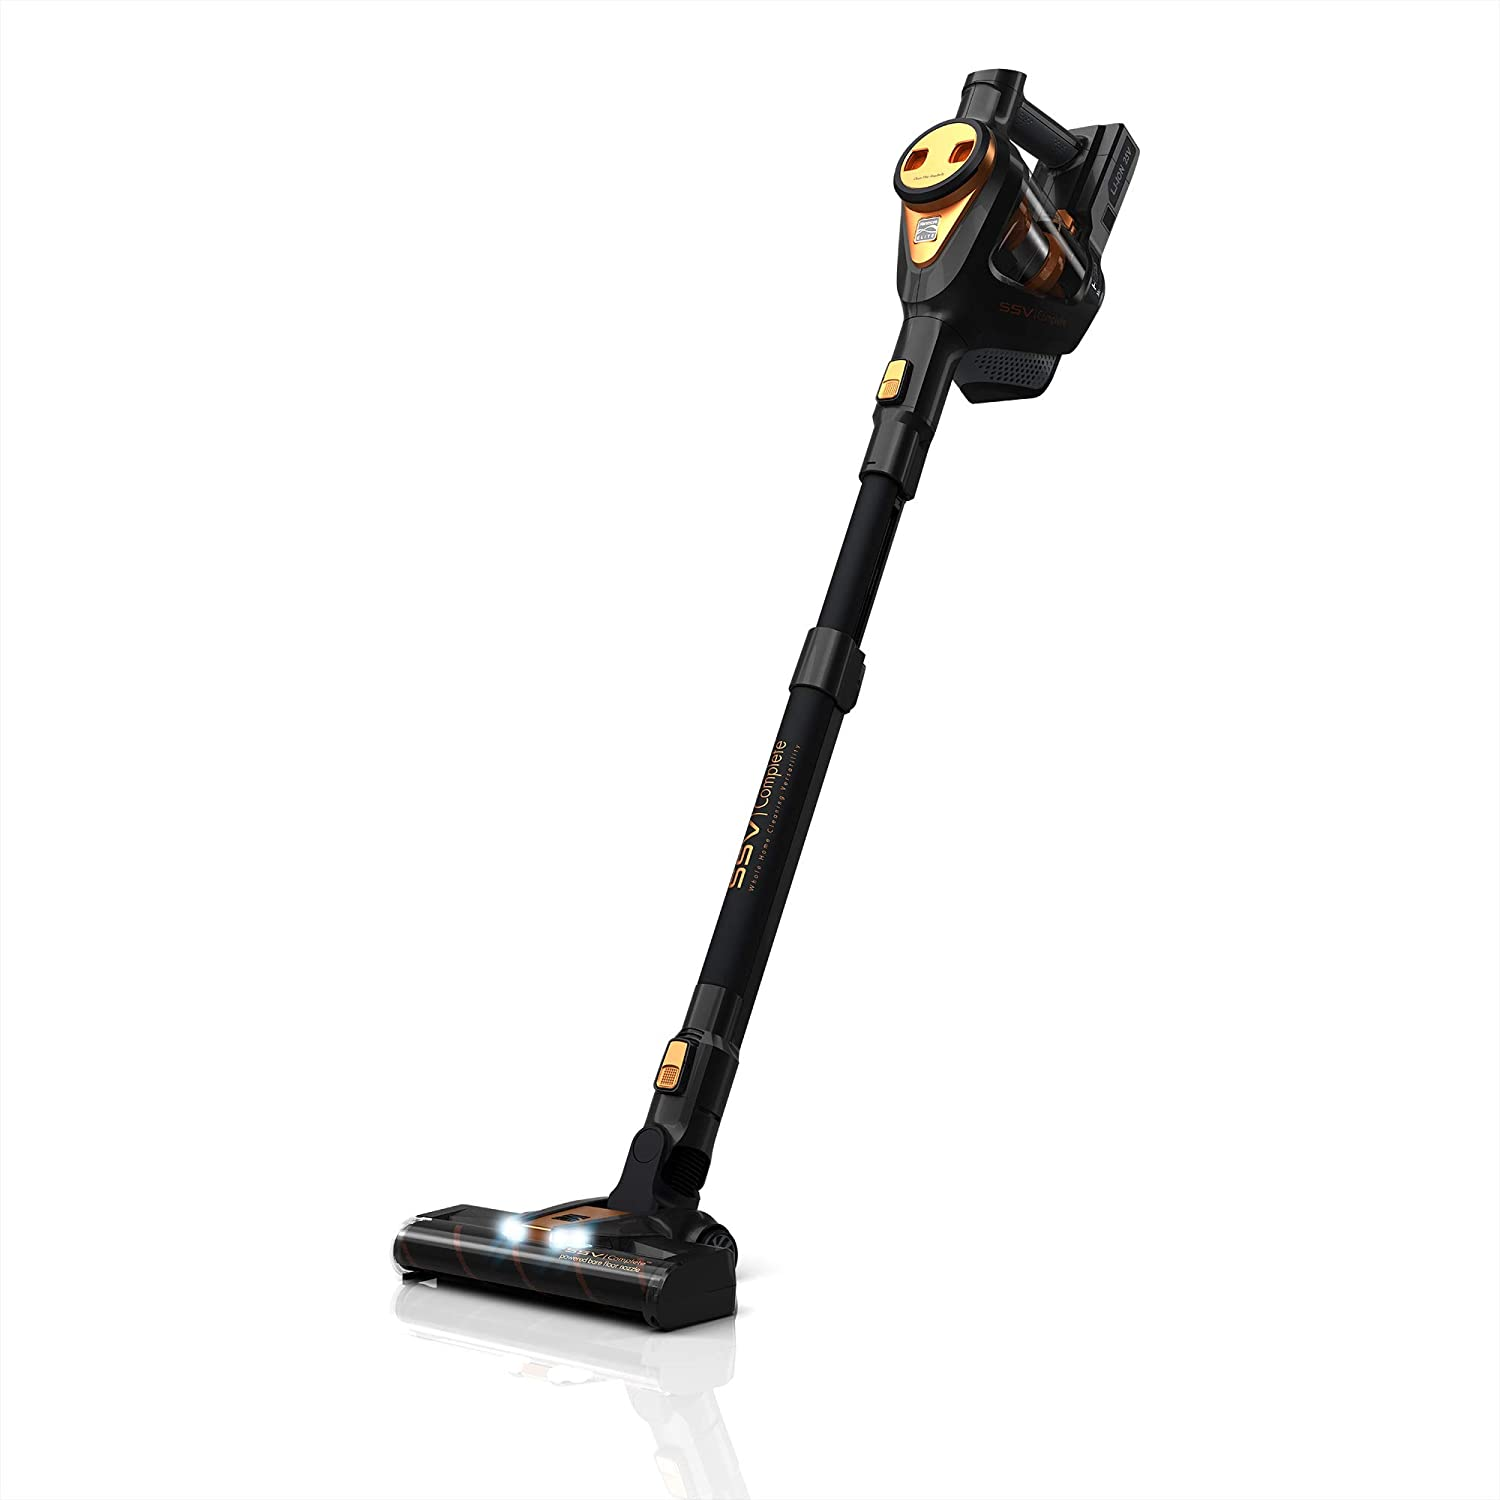 Kenmore Elite SSV 2-in-1 Complete Cordless Bagless Stick Vacuum Cleaner